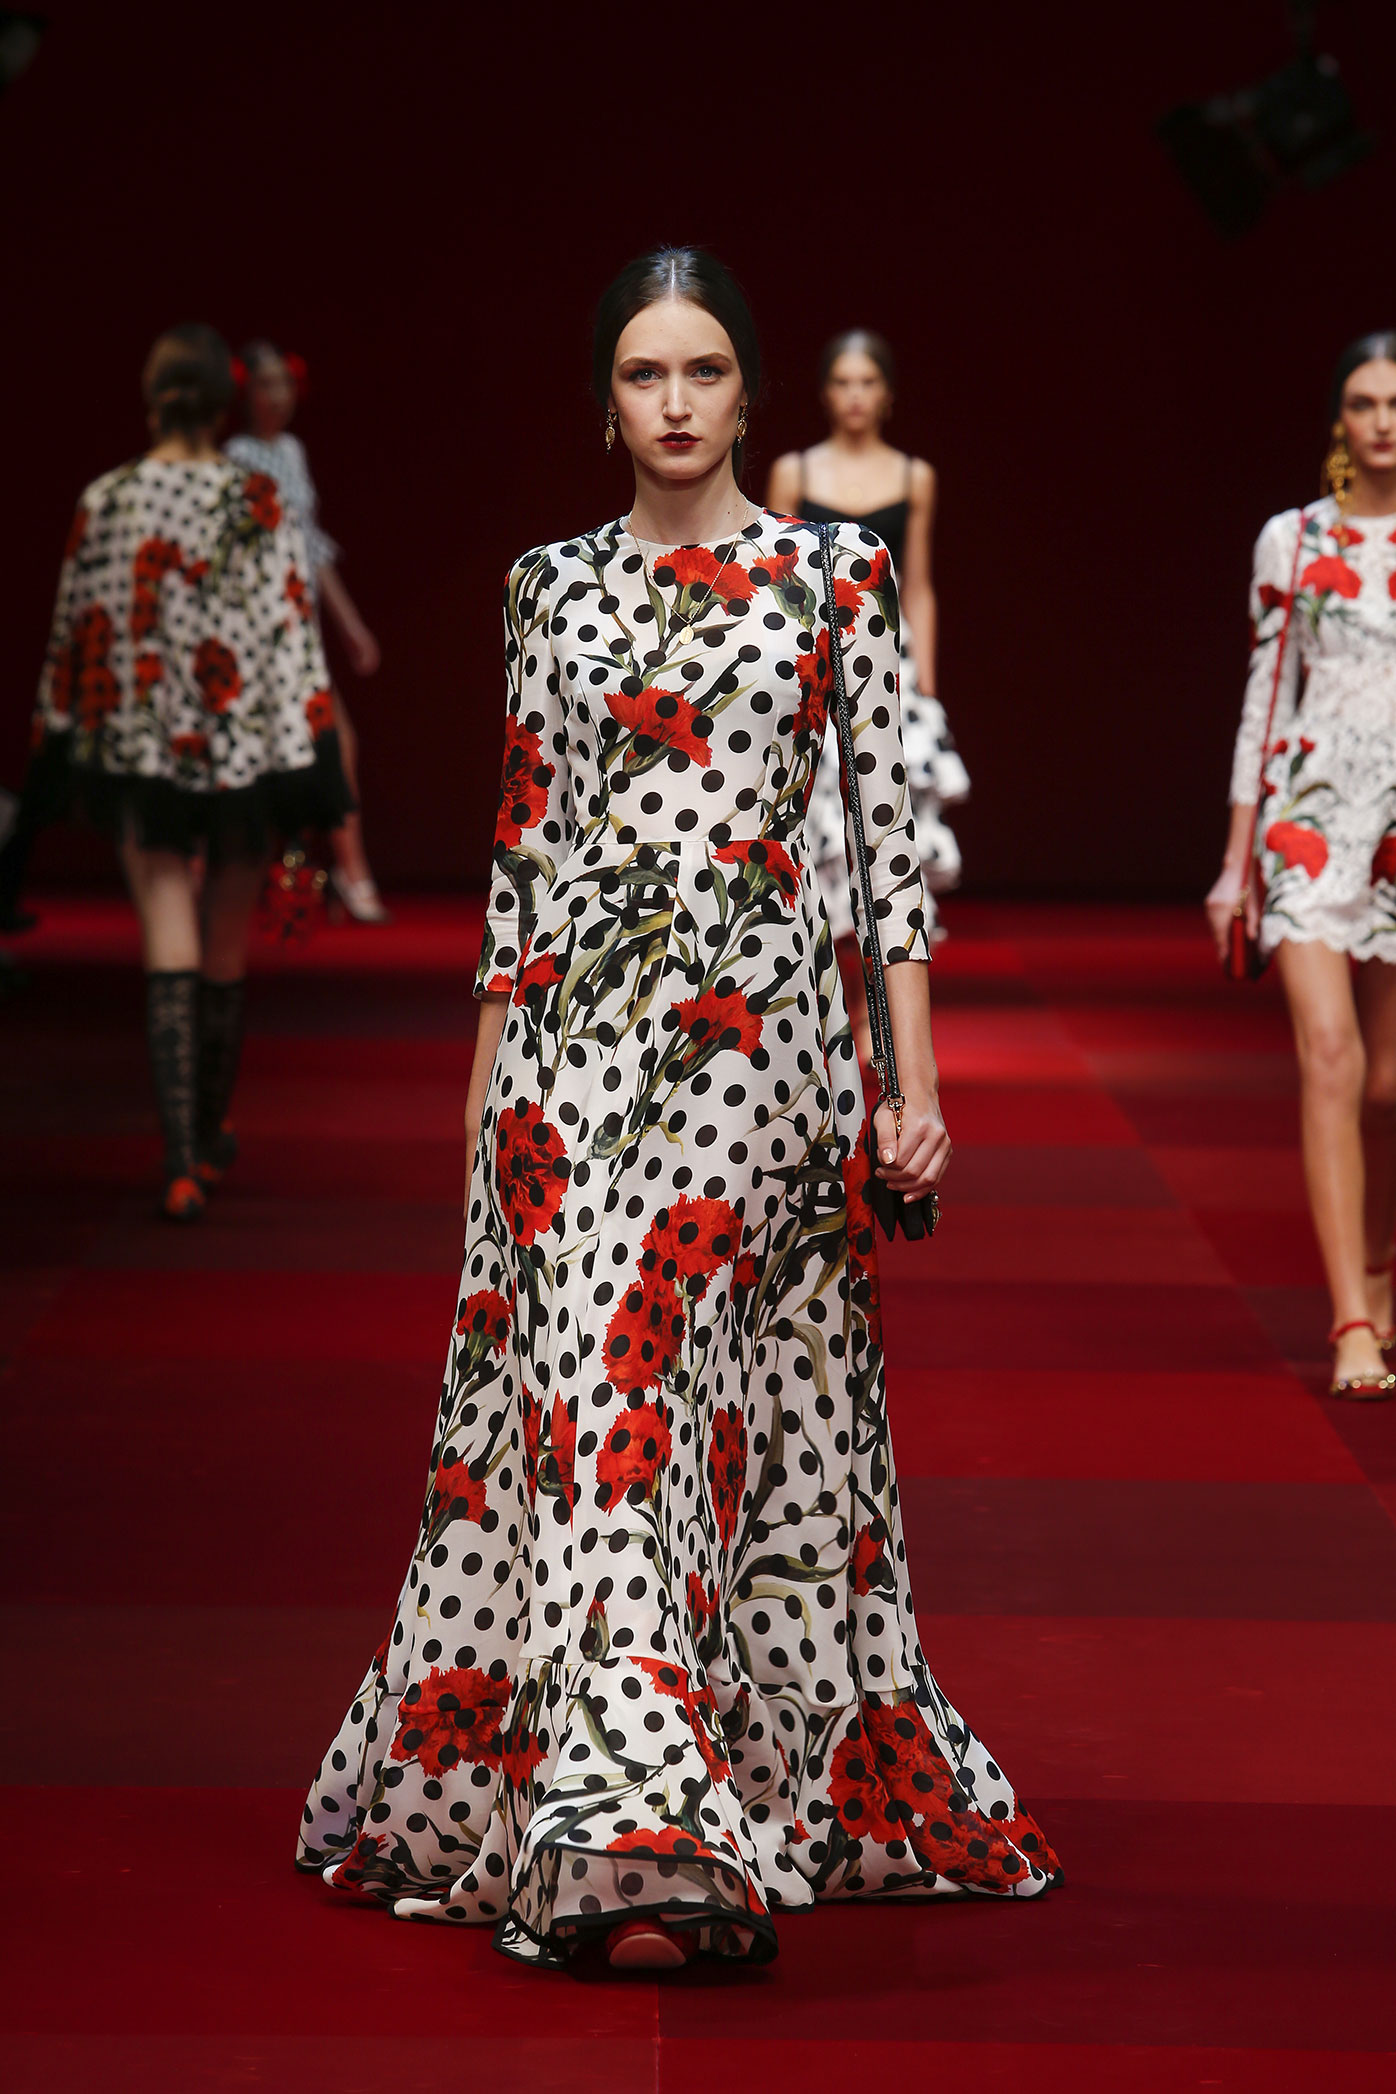 dolce-and-gabbana-summer-2015-women-fashion-show-runway-74-zoom